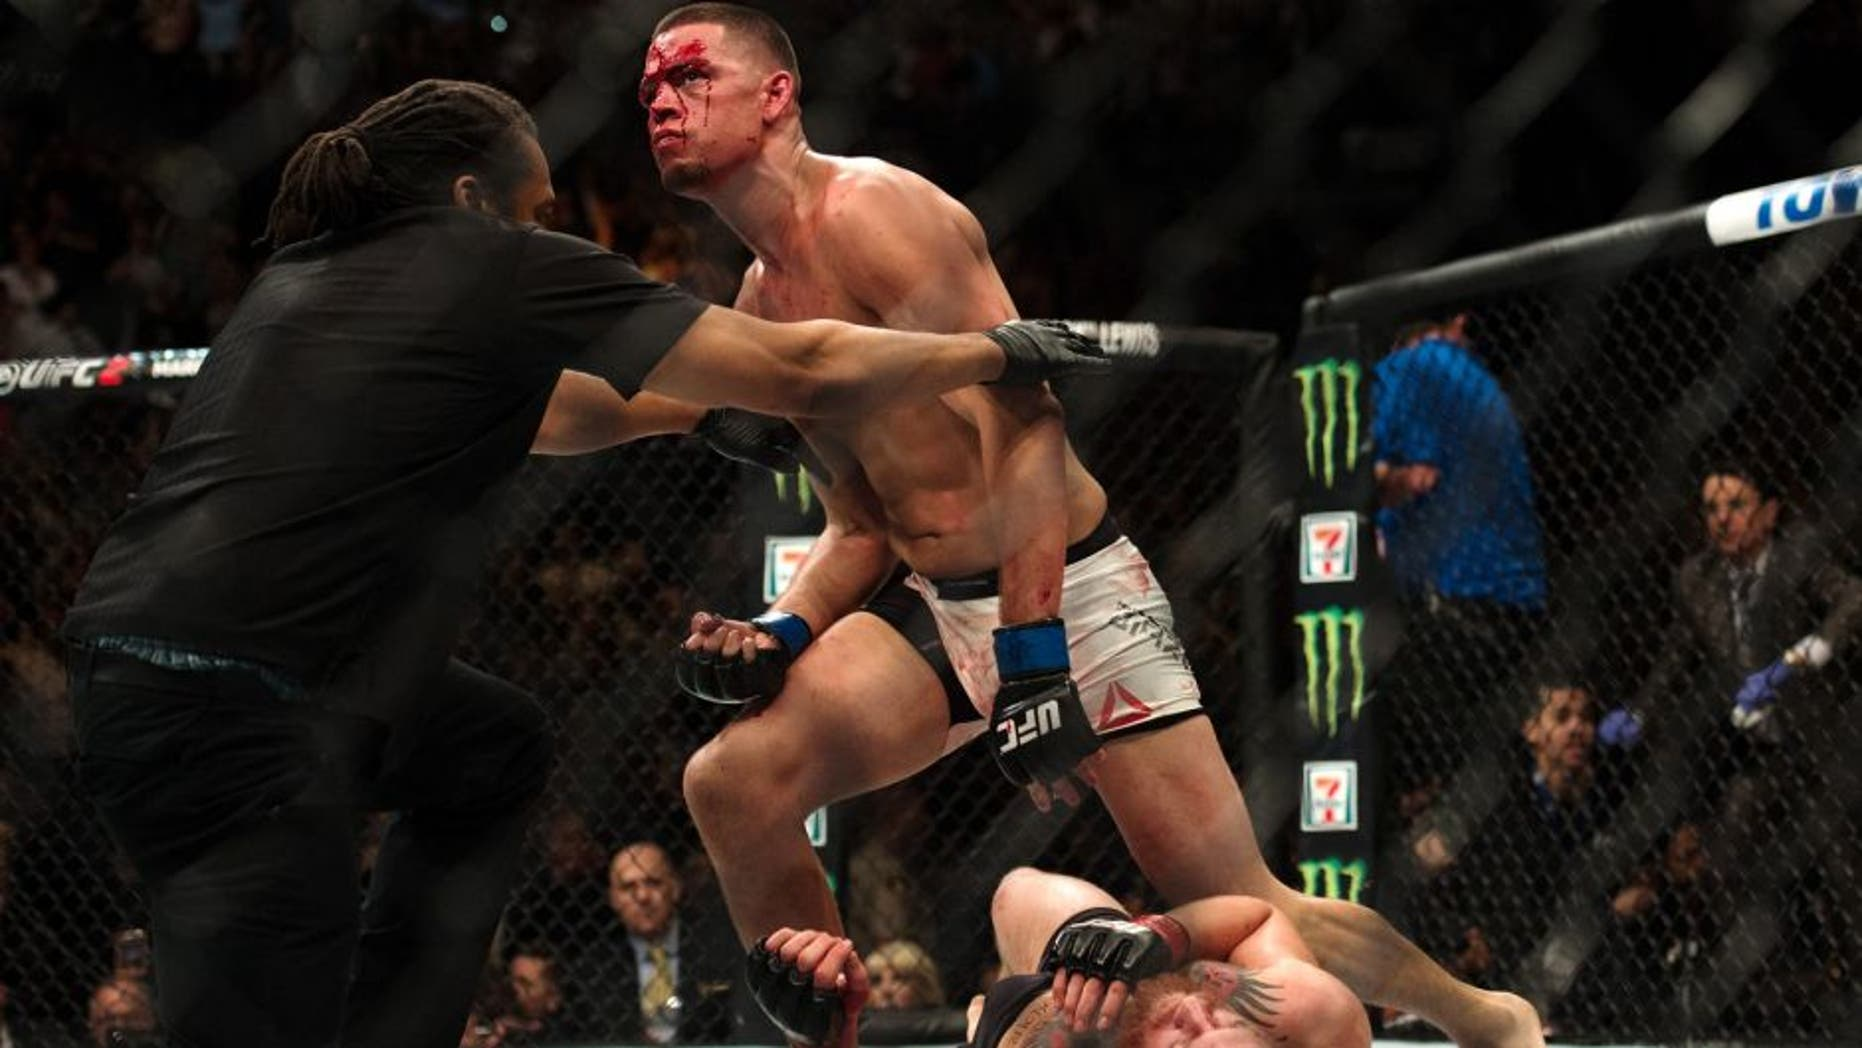 LAS VEGAS, NV - MARCH 5: Nate Diaz (top) submits Conor McGregor in their welterweight bout during the UFC 196 in the MGM Grand Garden Arena on March 5, 2016 in Las Vegas, Nevada. (Photo by Brandon Magnus/Zuffa LLC/Zuffa LLC via Getty Images)